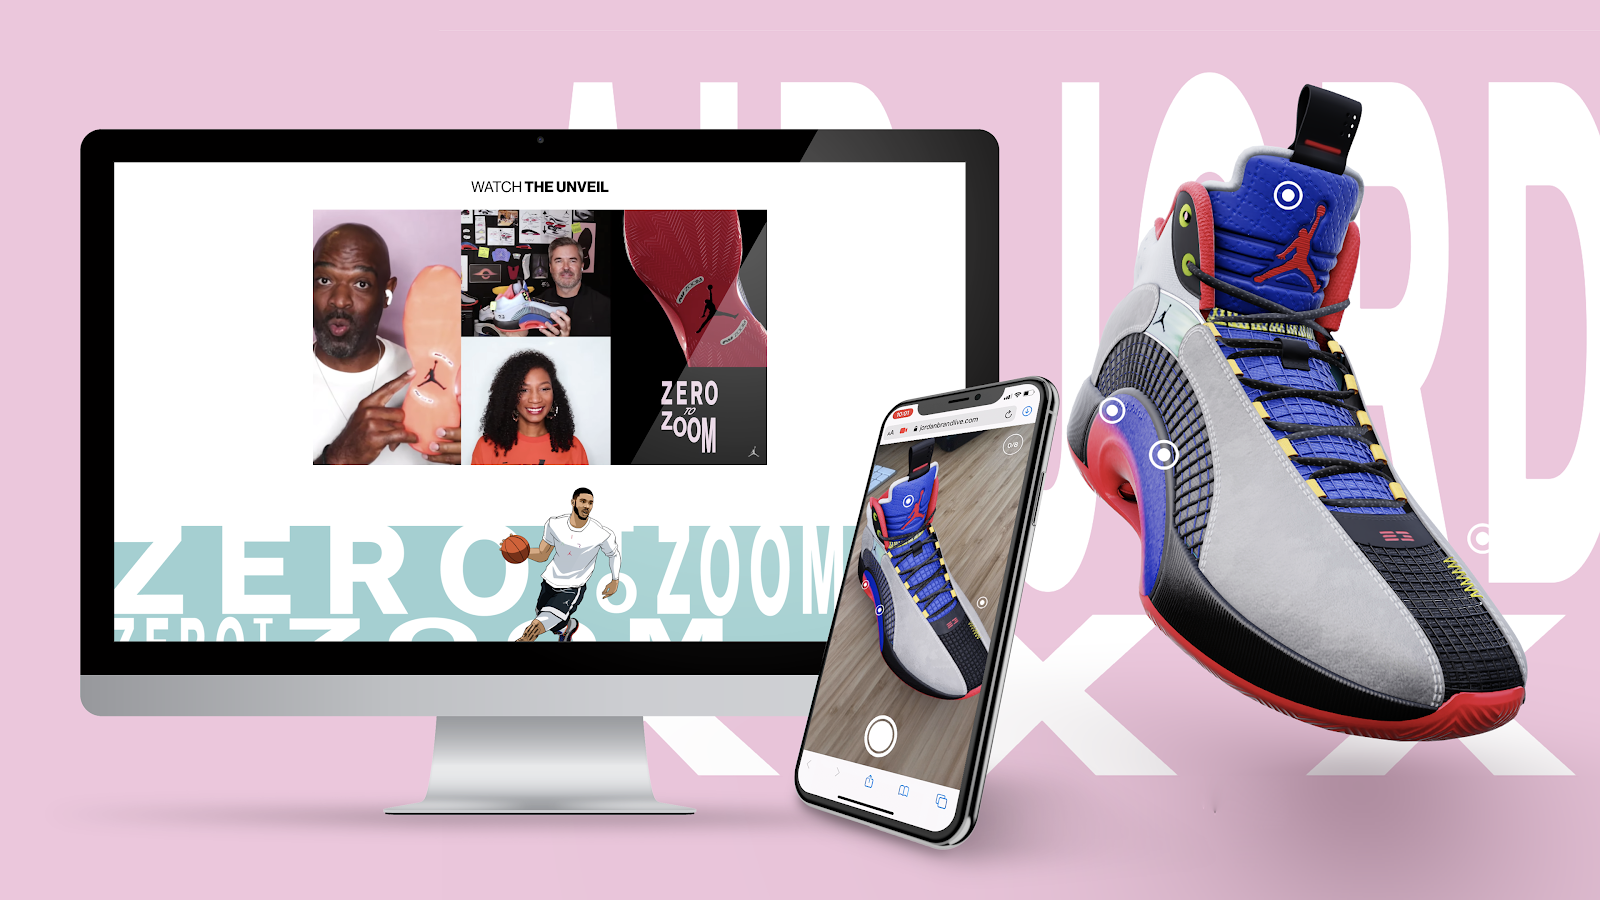 On a pink background, a grey, black, red, and blue Air Jordan shoe is shown. To its left, the shoe is shown on a mobile phone and on a computer screen.